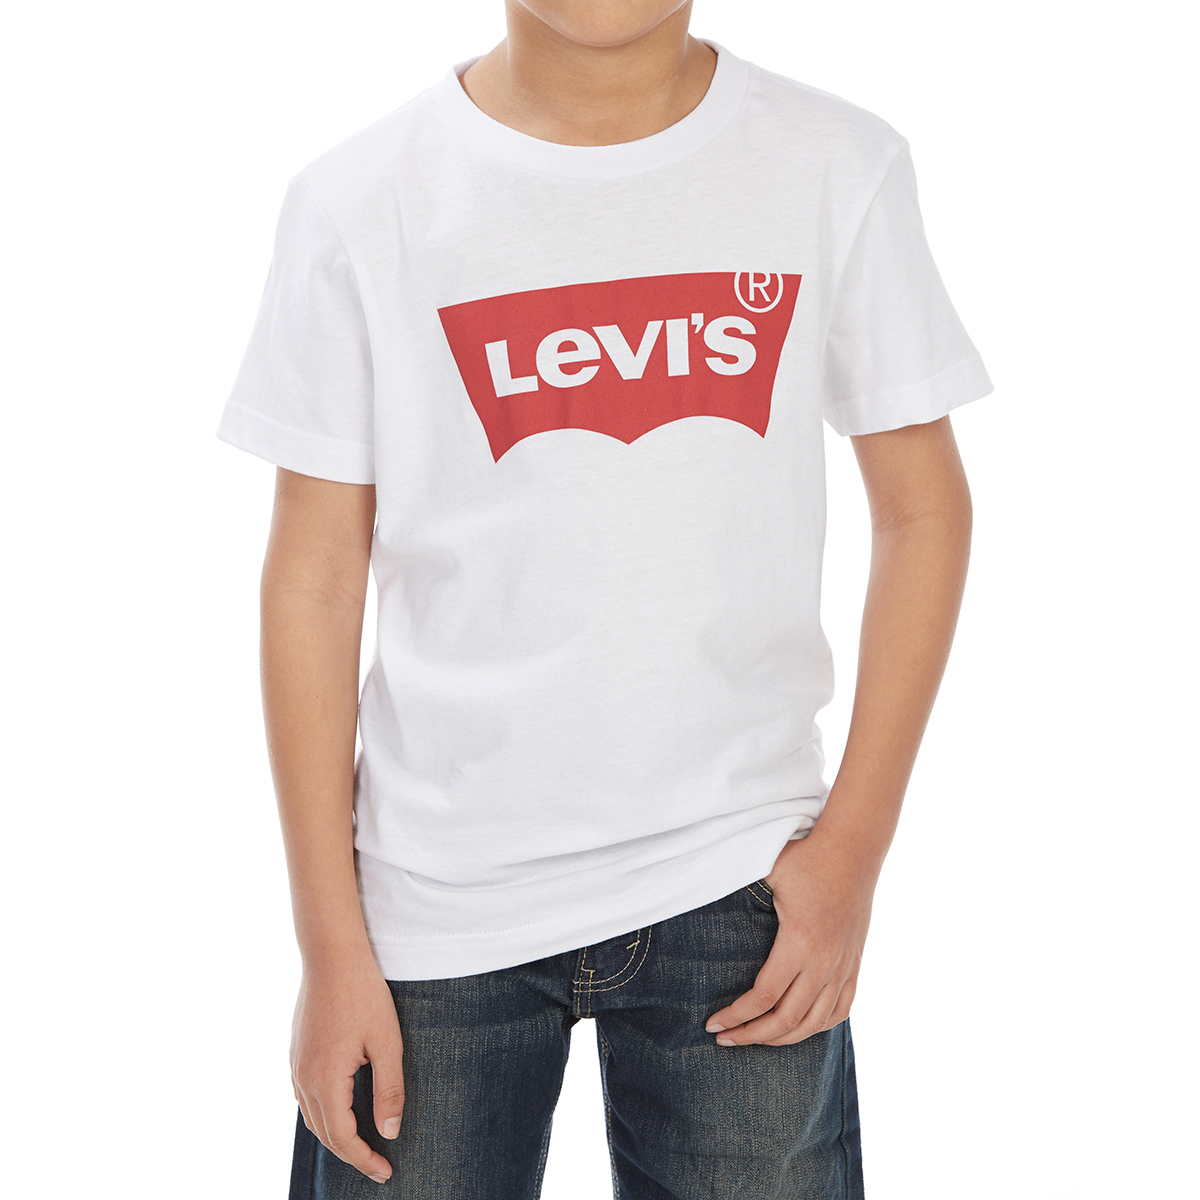 Levi's Toddler Boys' Batwing Short-Sleeve Tee - White, 2T